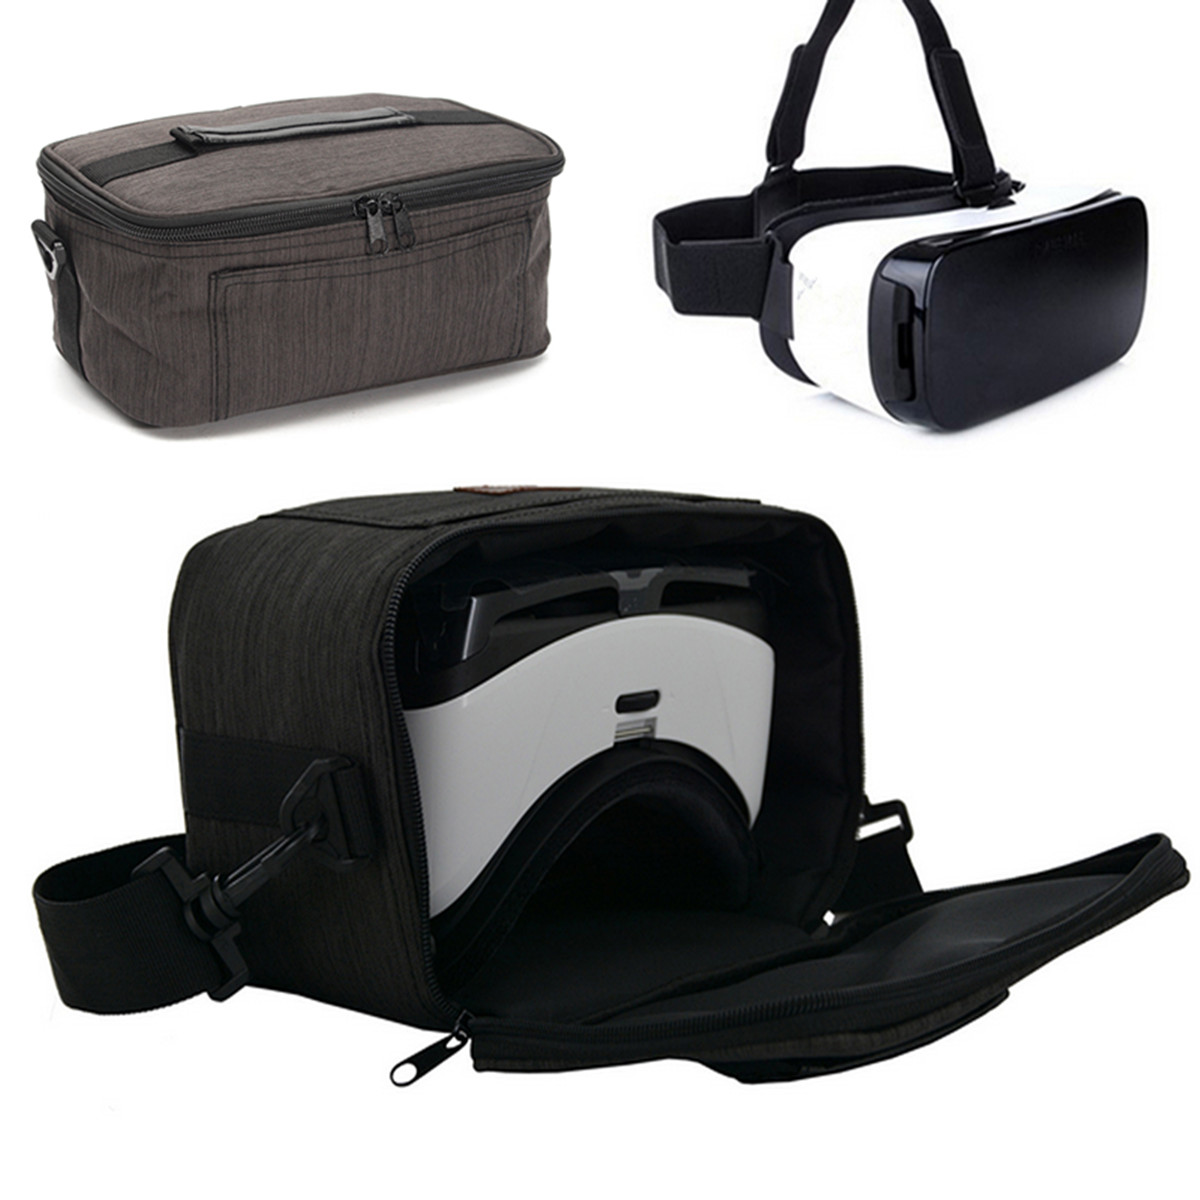 Claite 3D VR Glasses Storage Carrying Travel Case Bag Outdoor 3D Virtual Reality Glasses Bags For Samsung Gear VR 3D Glasses